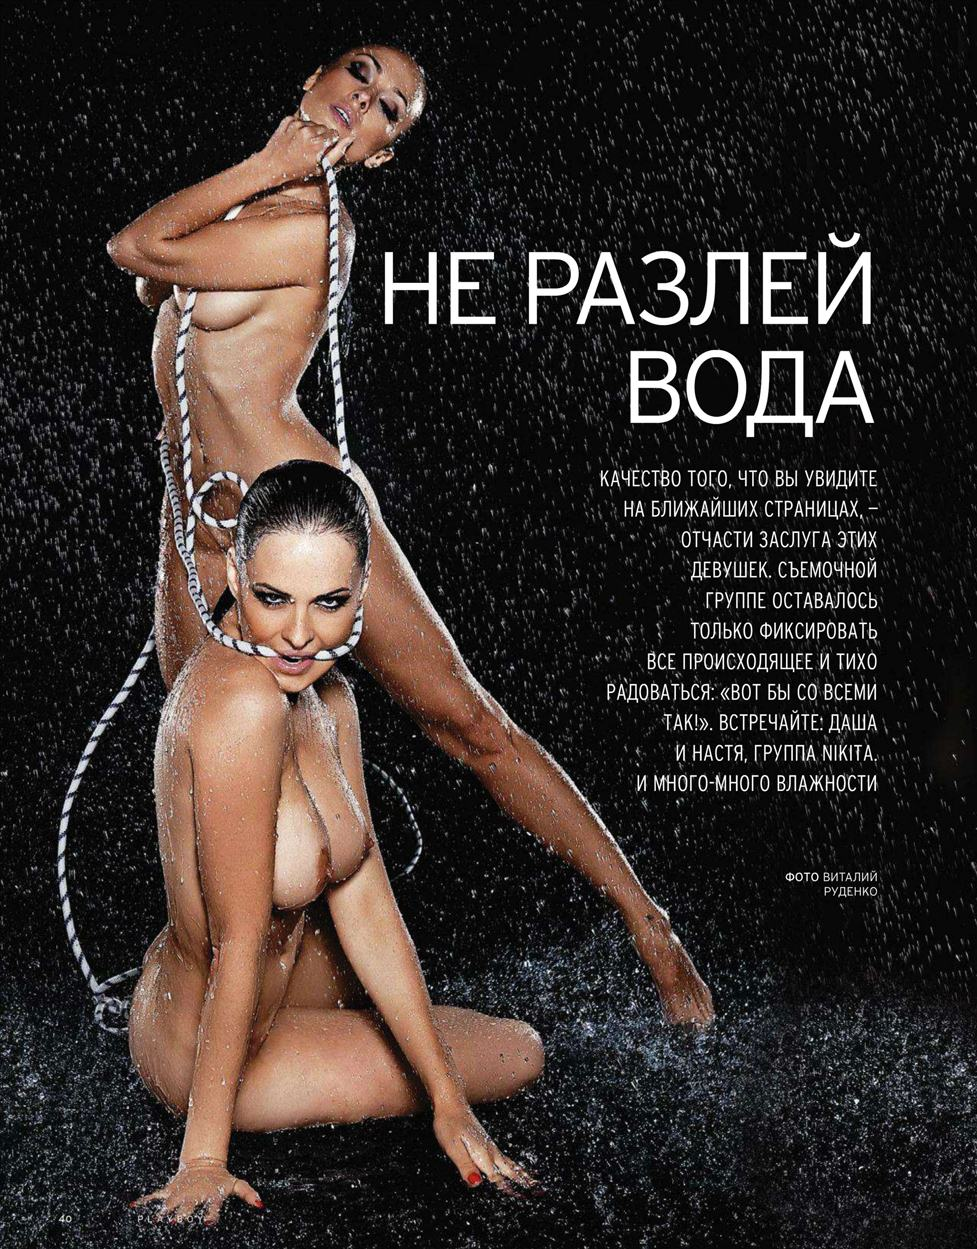 NikitA band / Dasha Astafieva / Даша Астафьева и Анастасия Кумейко в Playboy Украина, сентябрь 2011